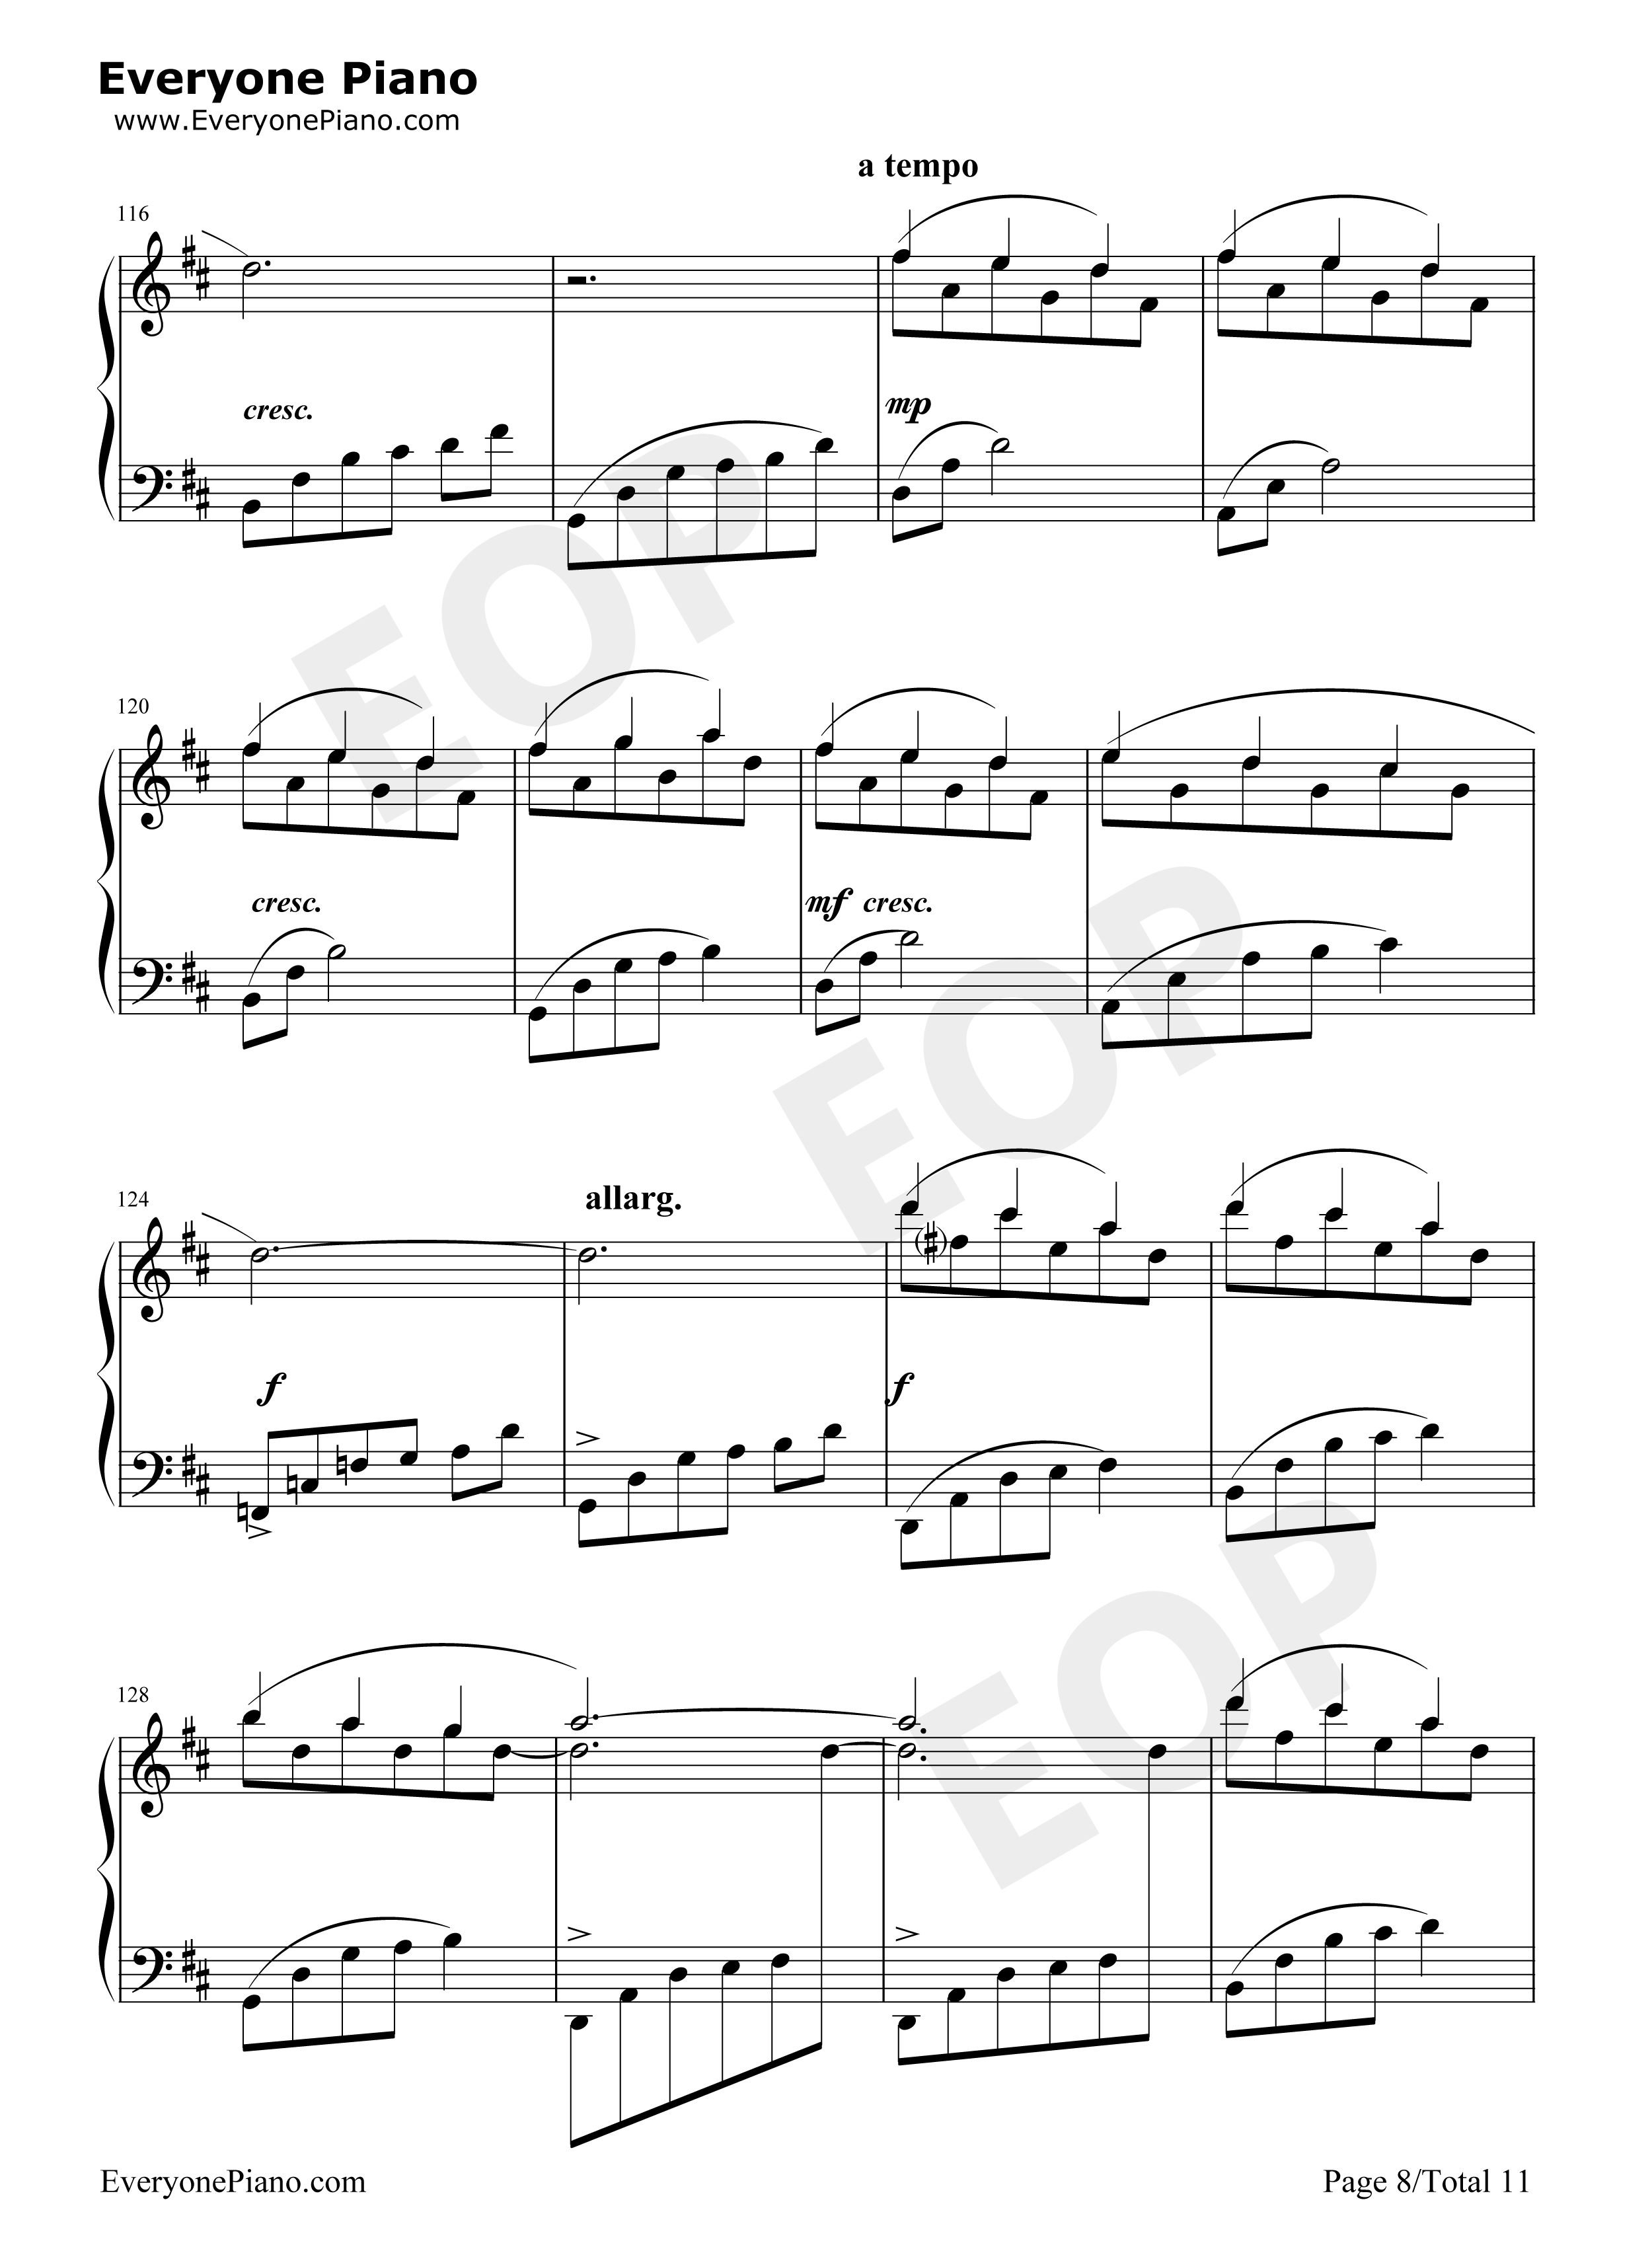 Free sheet music for amateur musicians and learners